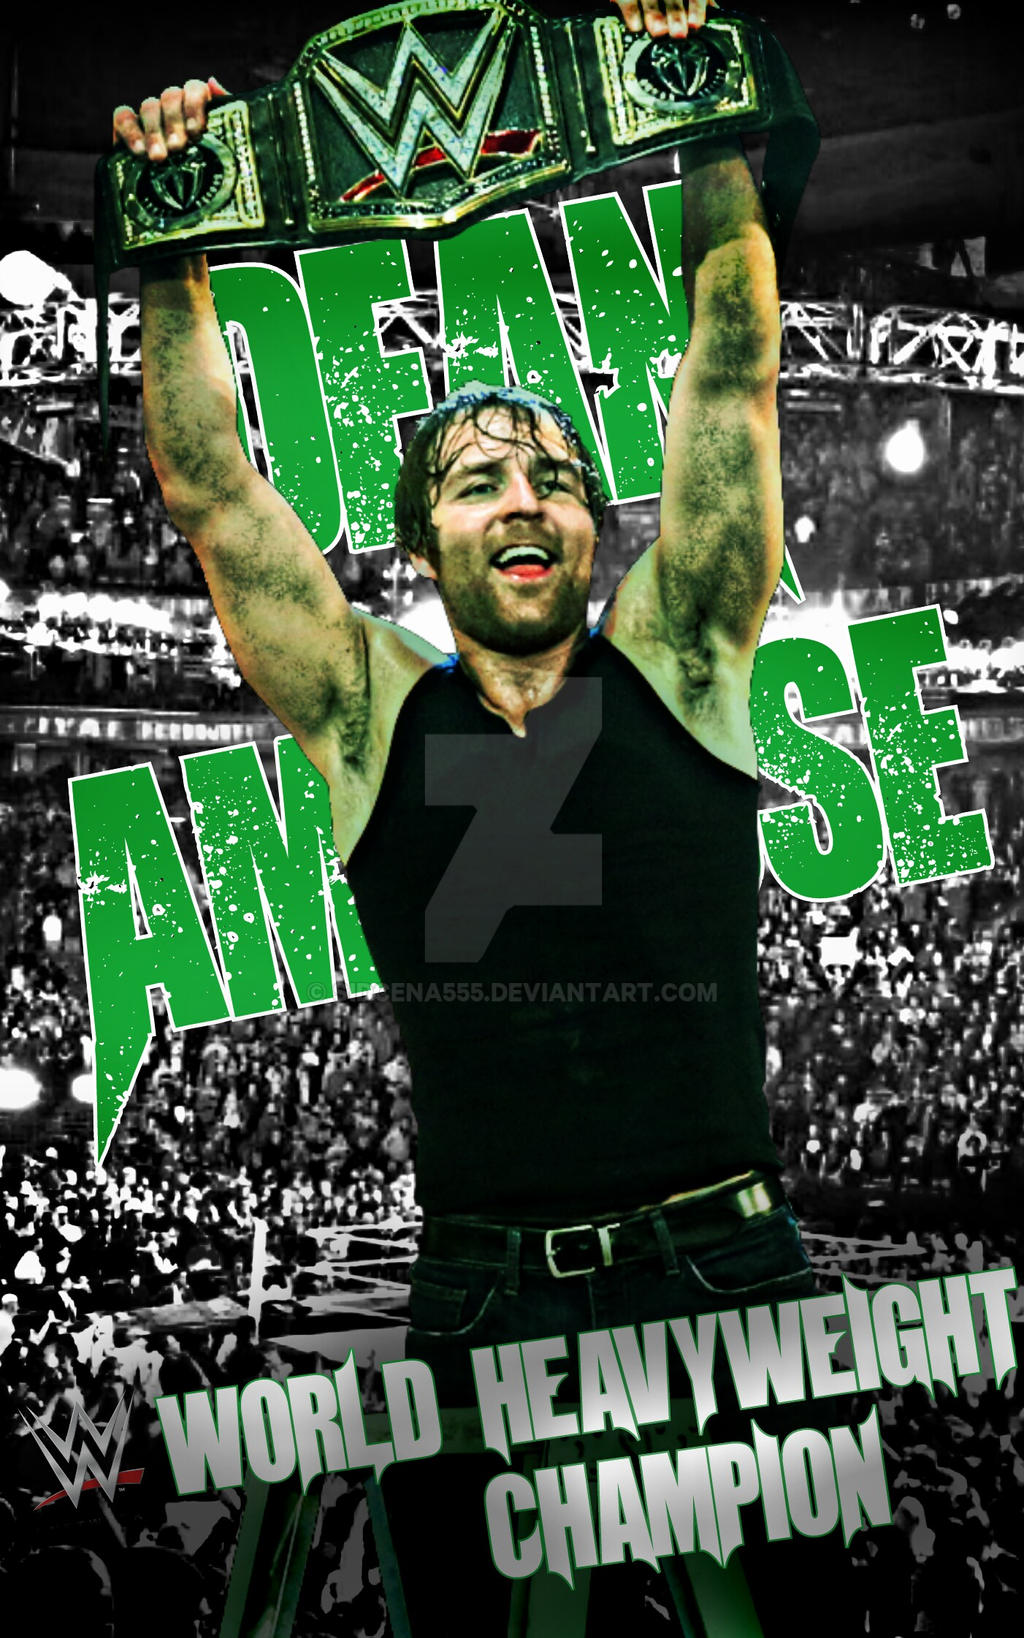 dean ambrose wwe champion poster 2016 by sidcena555 on deviantart